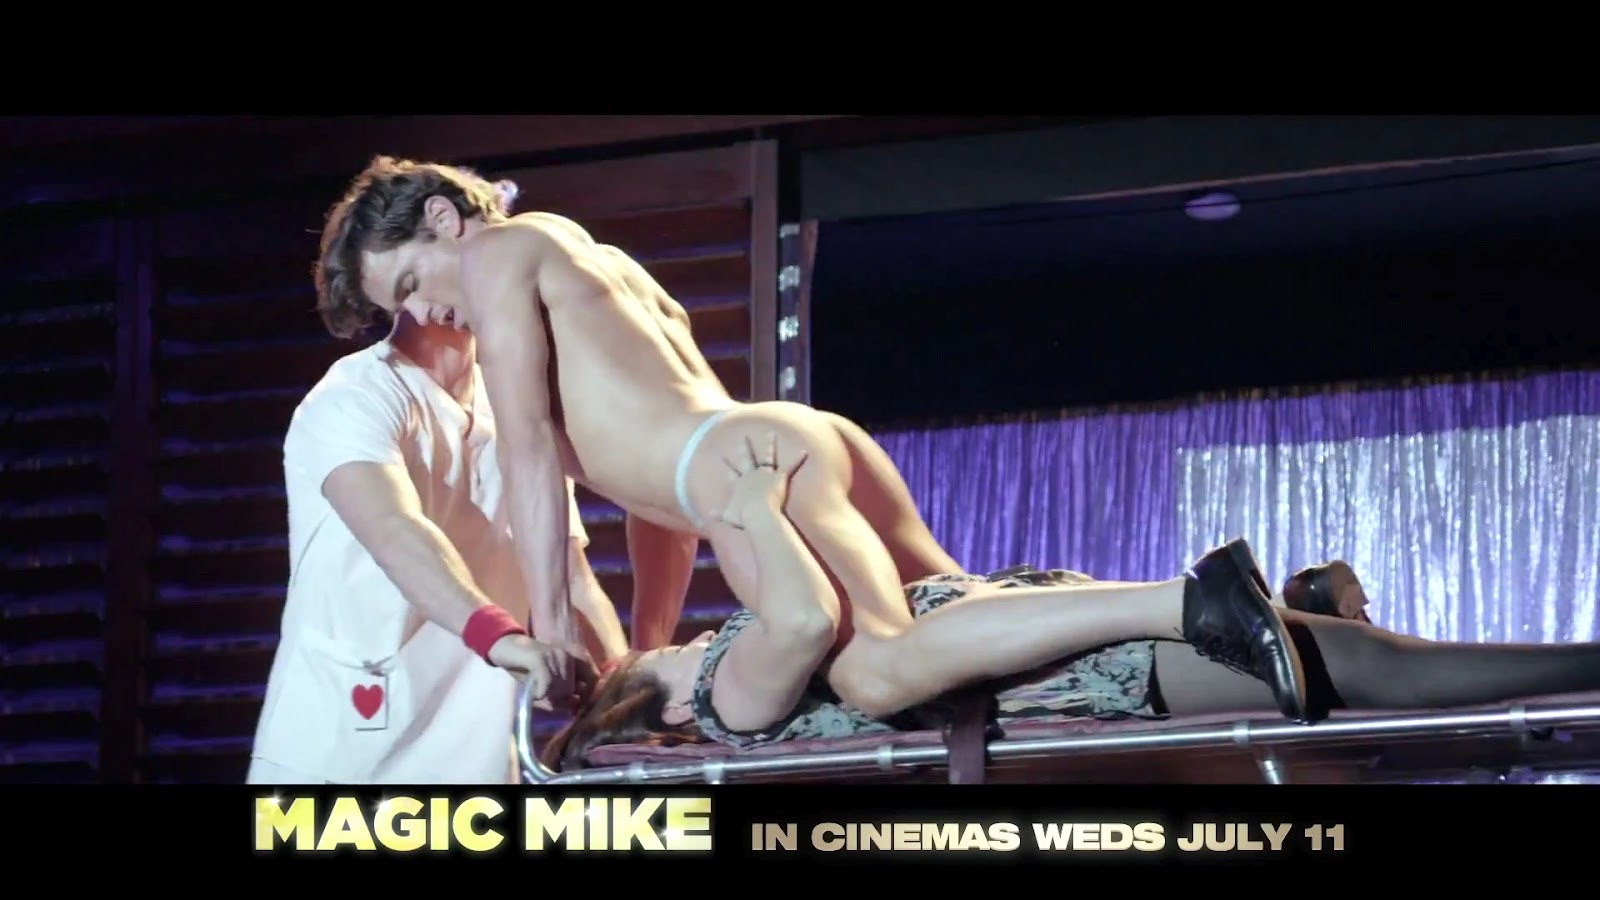 http://4.bp.blogspot.com/-DJM13-FPtks/URSoffr0HuI/AAAAAAAAEVU/hP8-5tHl-qk/s1600/Magic_Mike_Trailer_01.jpg